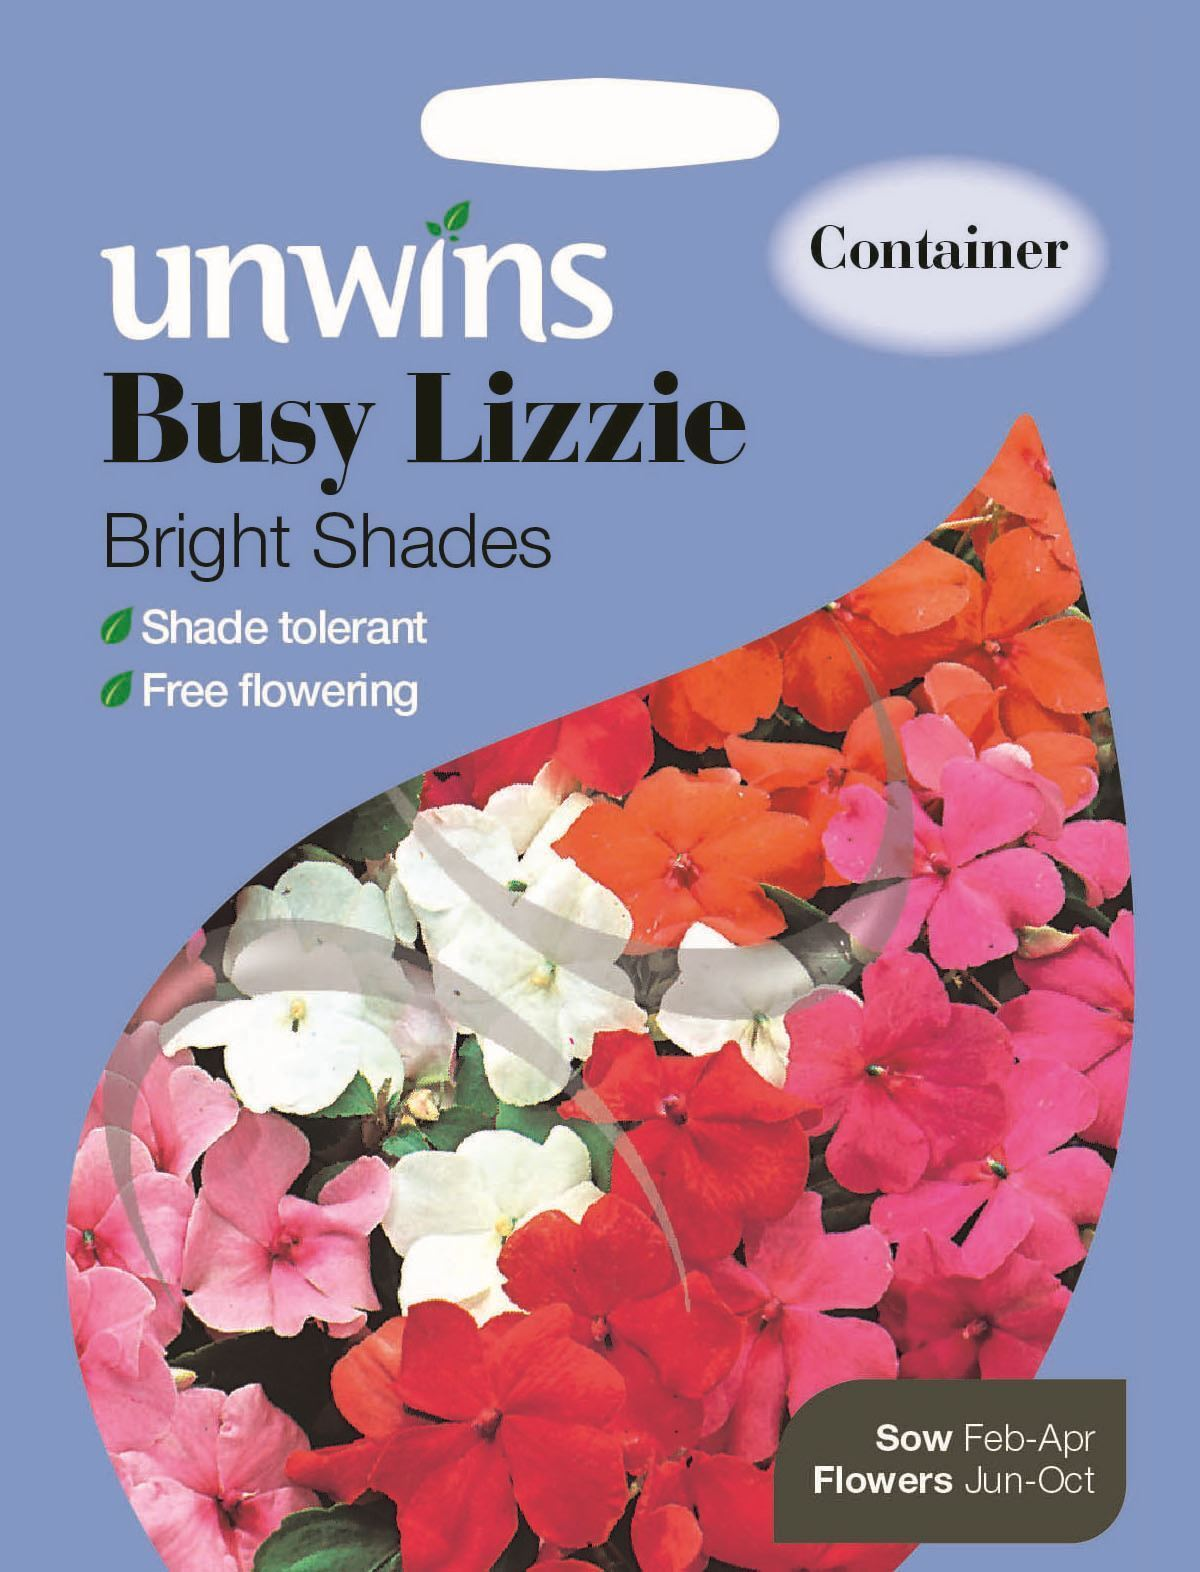 Busy Lizzie Bright Shades Unwins Pictorial Packet Flower 50 Seeds